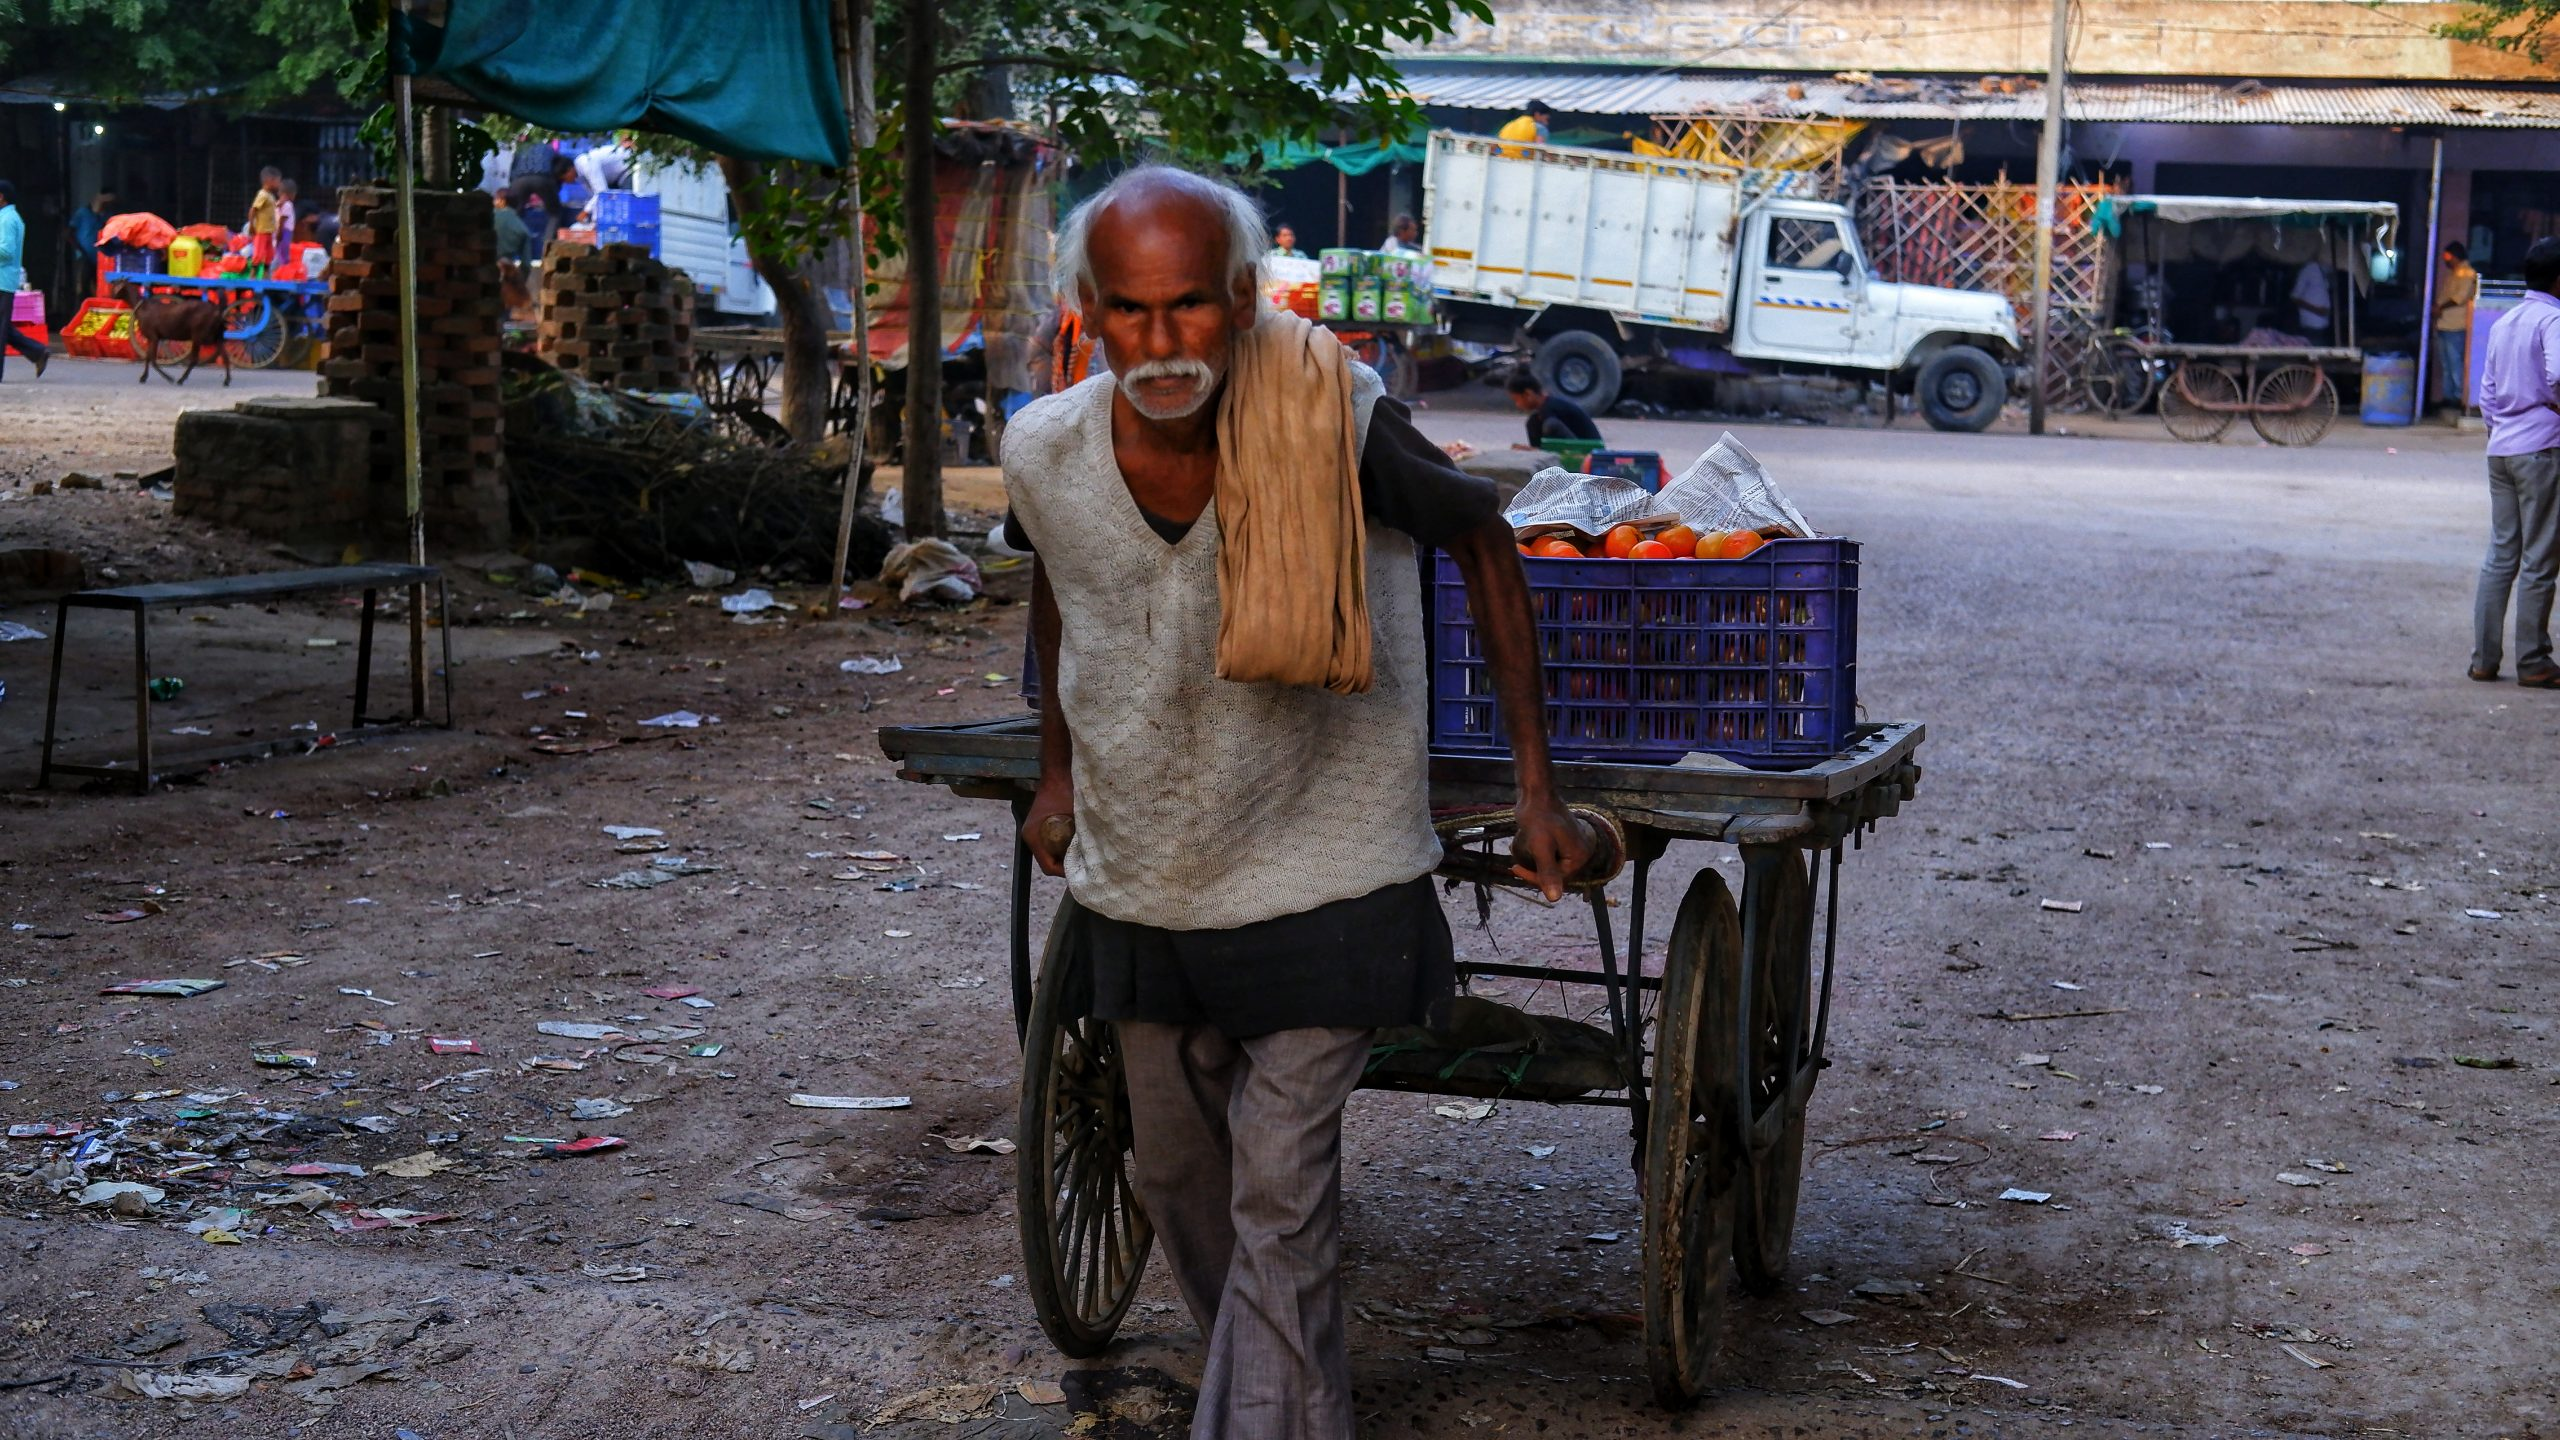 An old man pulling a cart